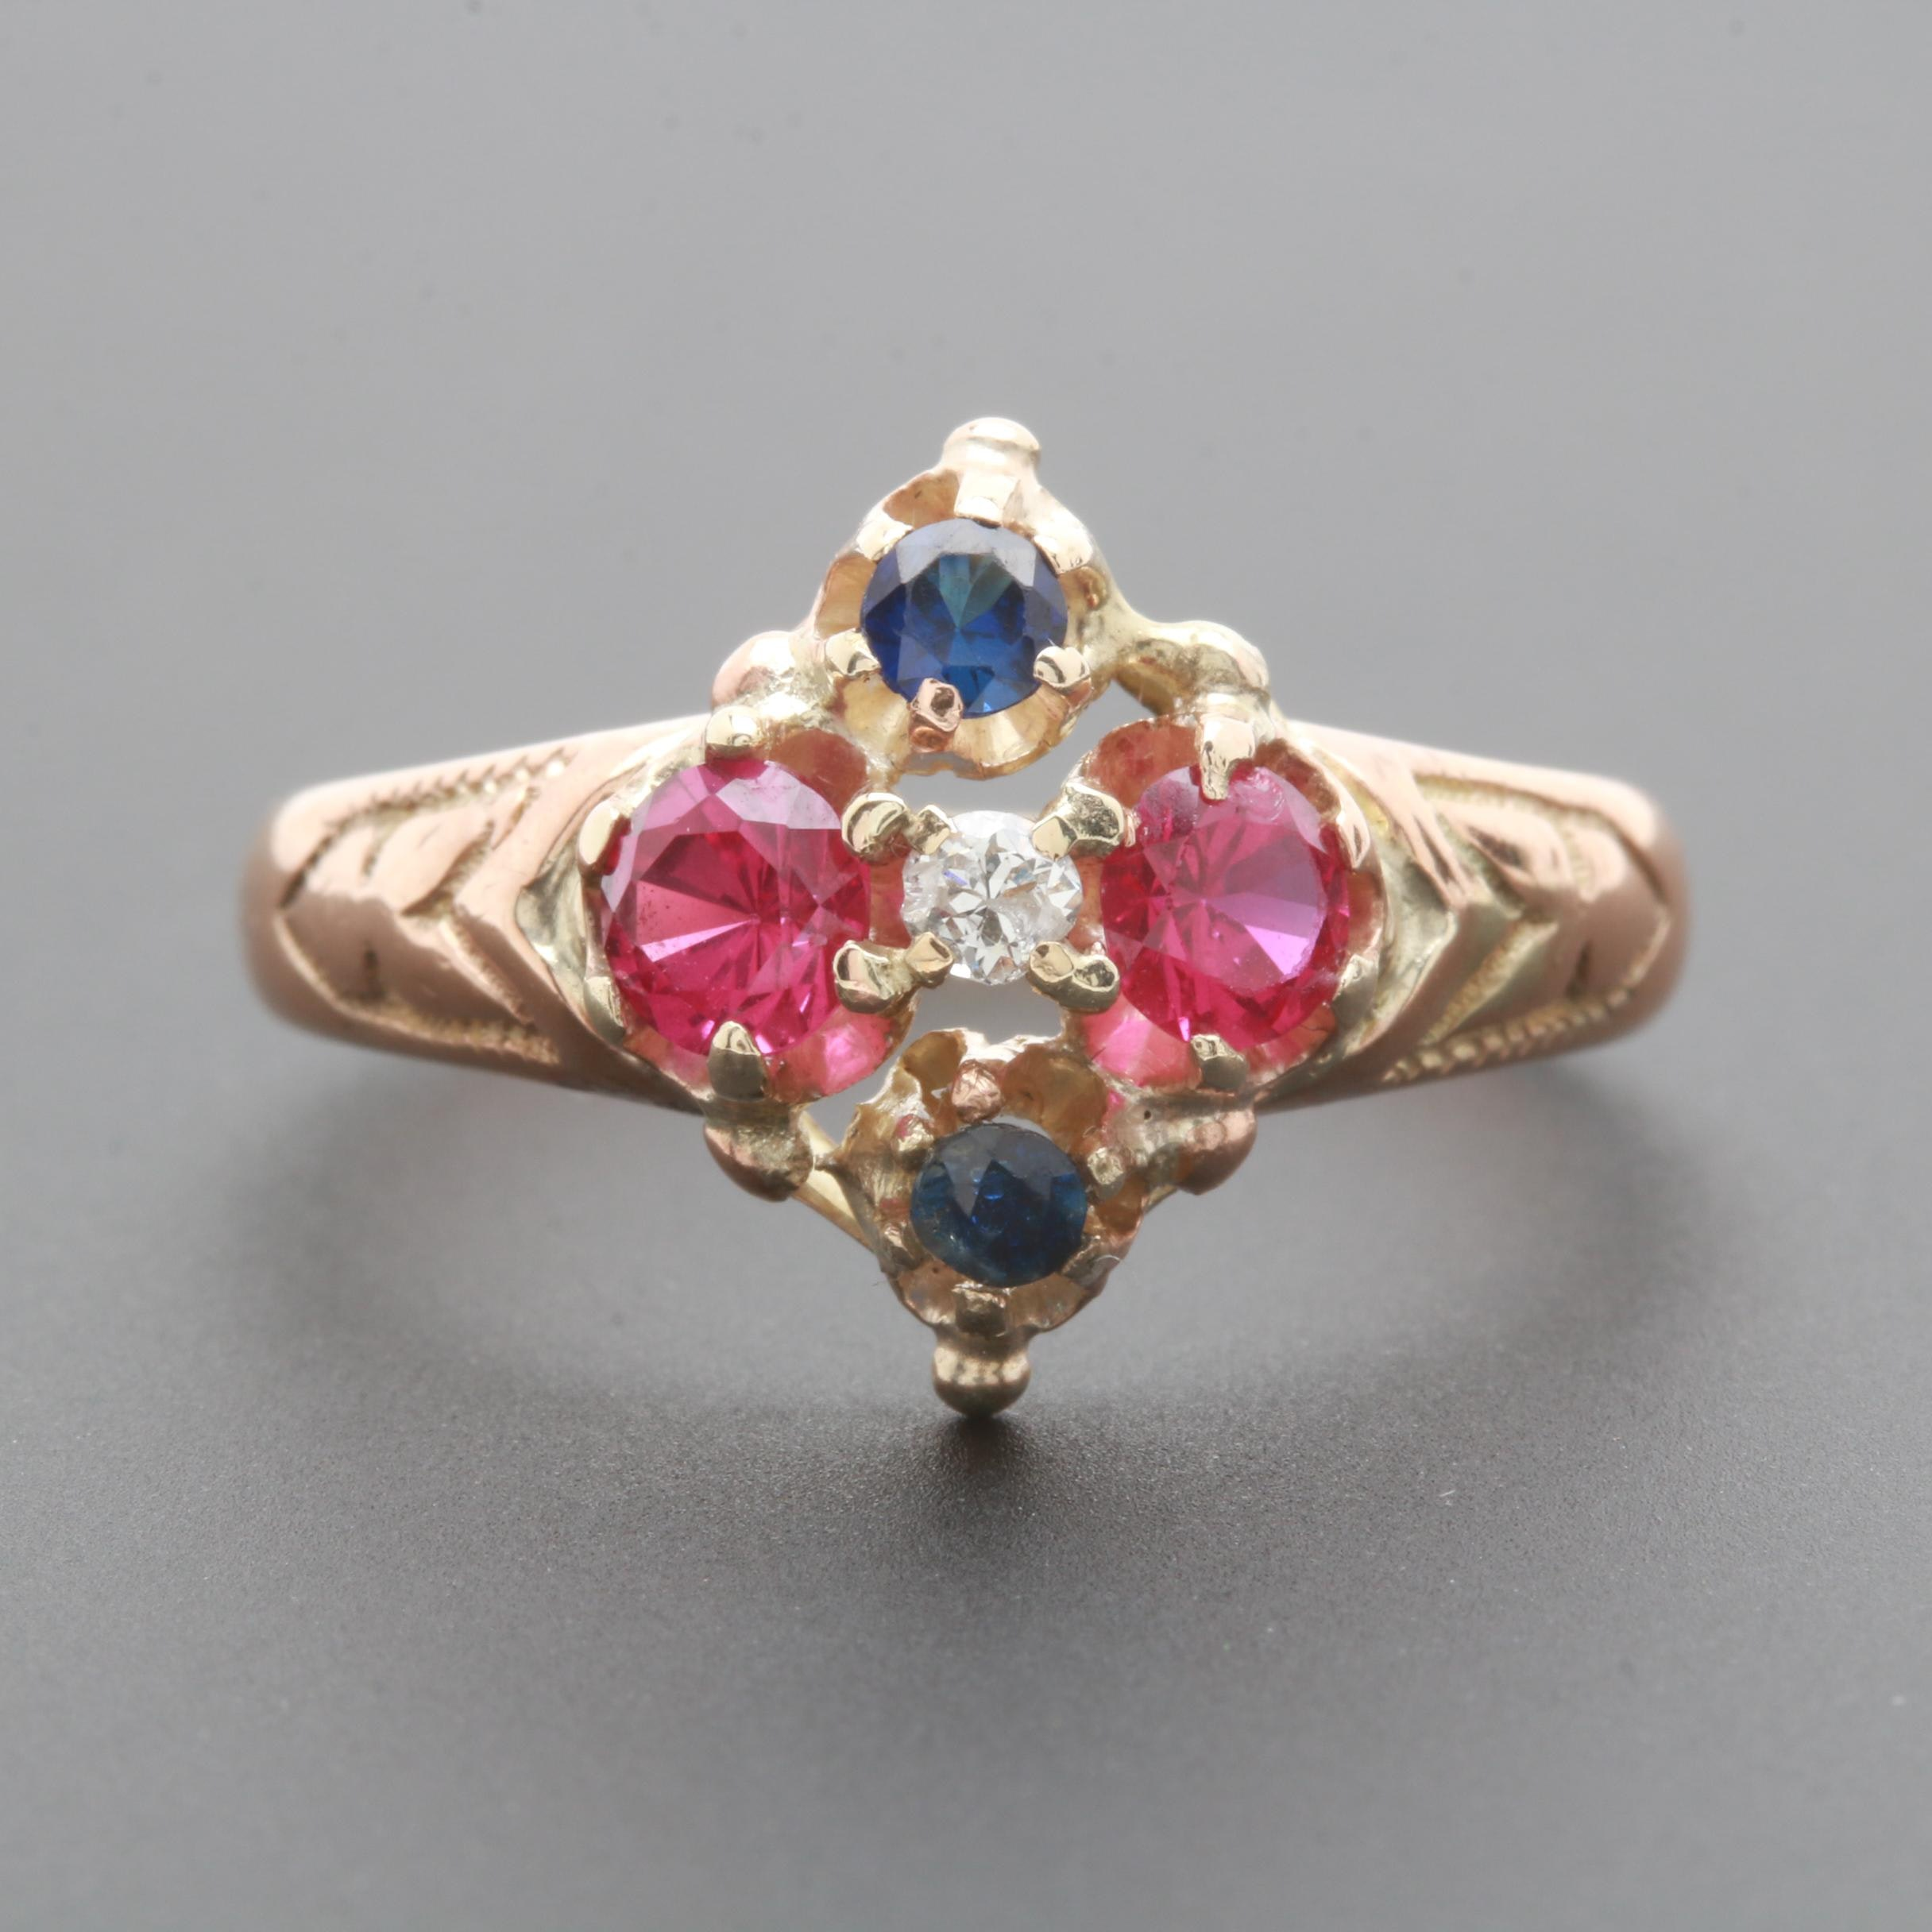 10K Yellow Gold Synthetic Ruby, Synthetic Sapphire and Diamond Ring